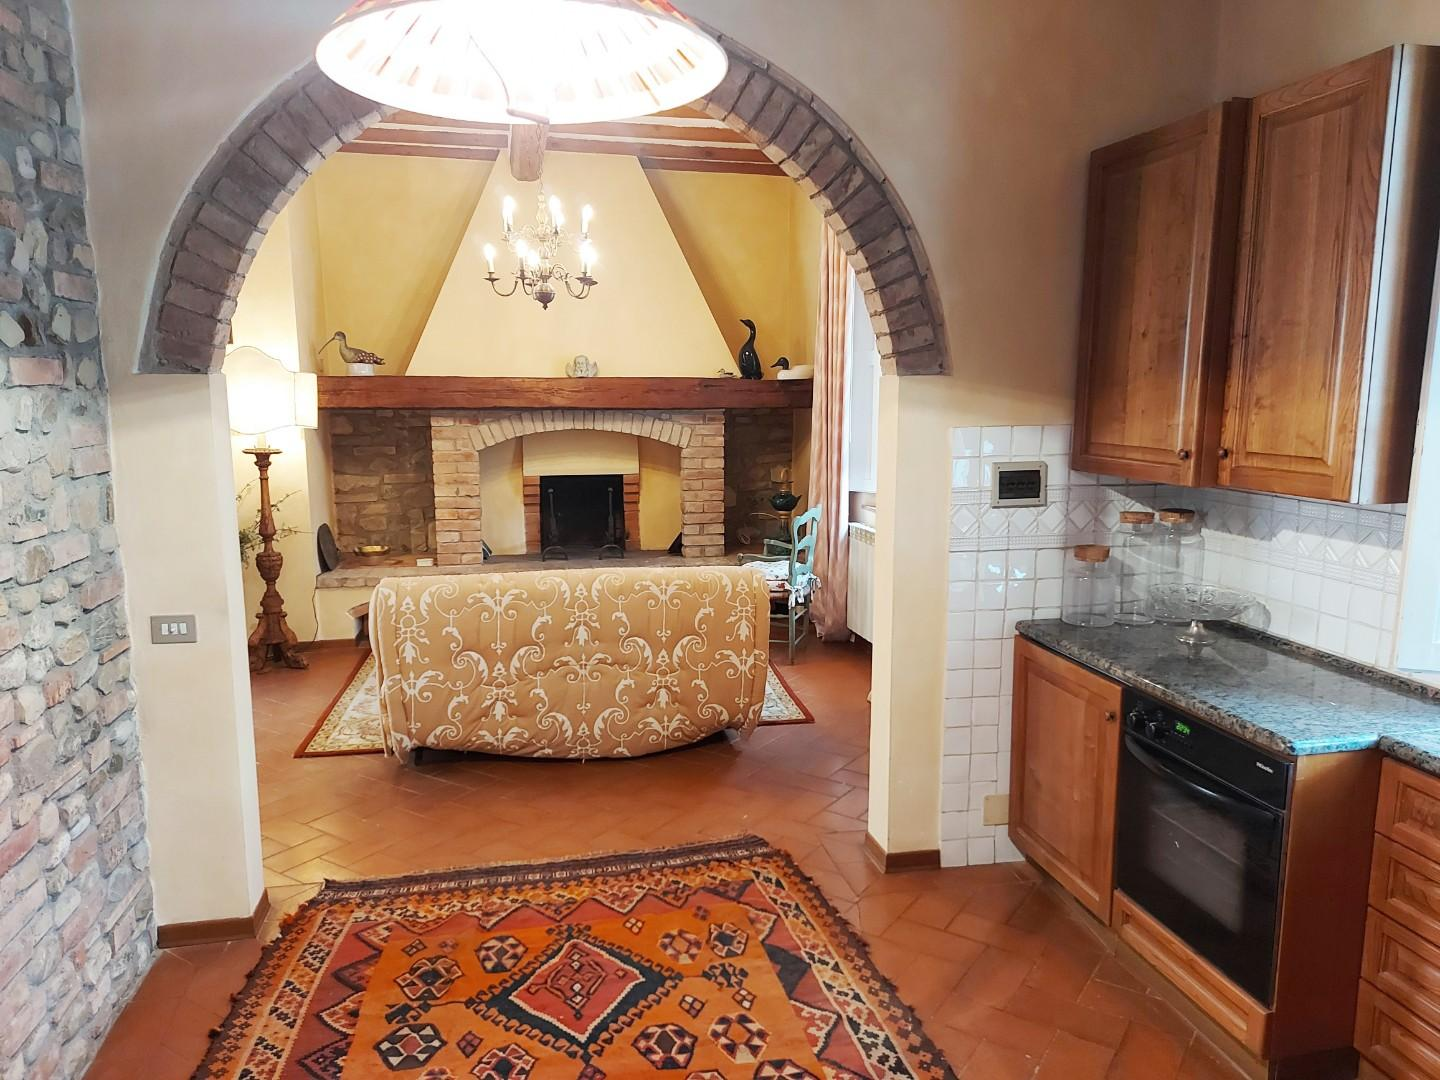 Semi-detached house for sale in LaundriesMonteroni d'Arbia (SI)